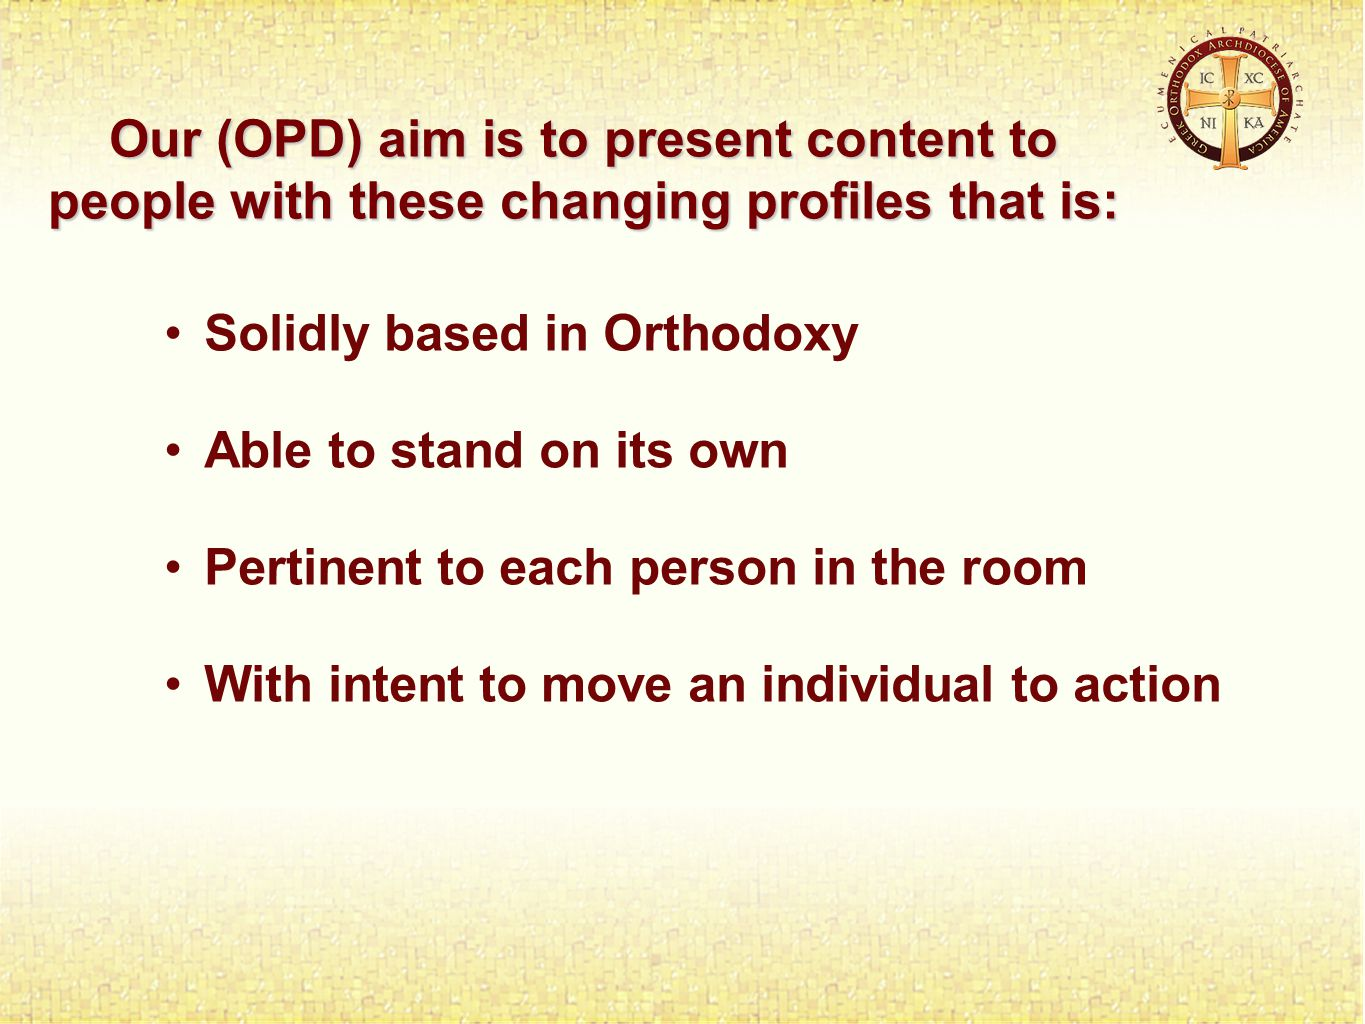 Solidly based in Orthodoxy Able to stand on its own Pertinent to each person in the room With intent to move an individual to action Our (OPD) aim is to present content to people with these changing profiles that is: